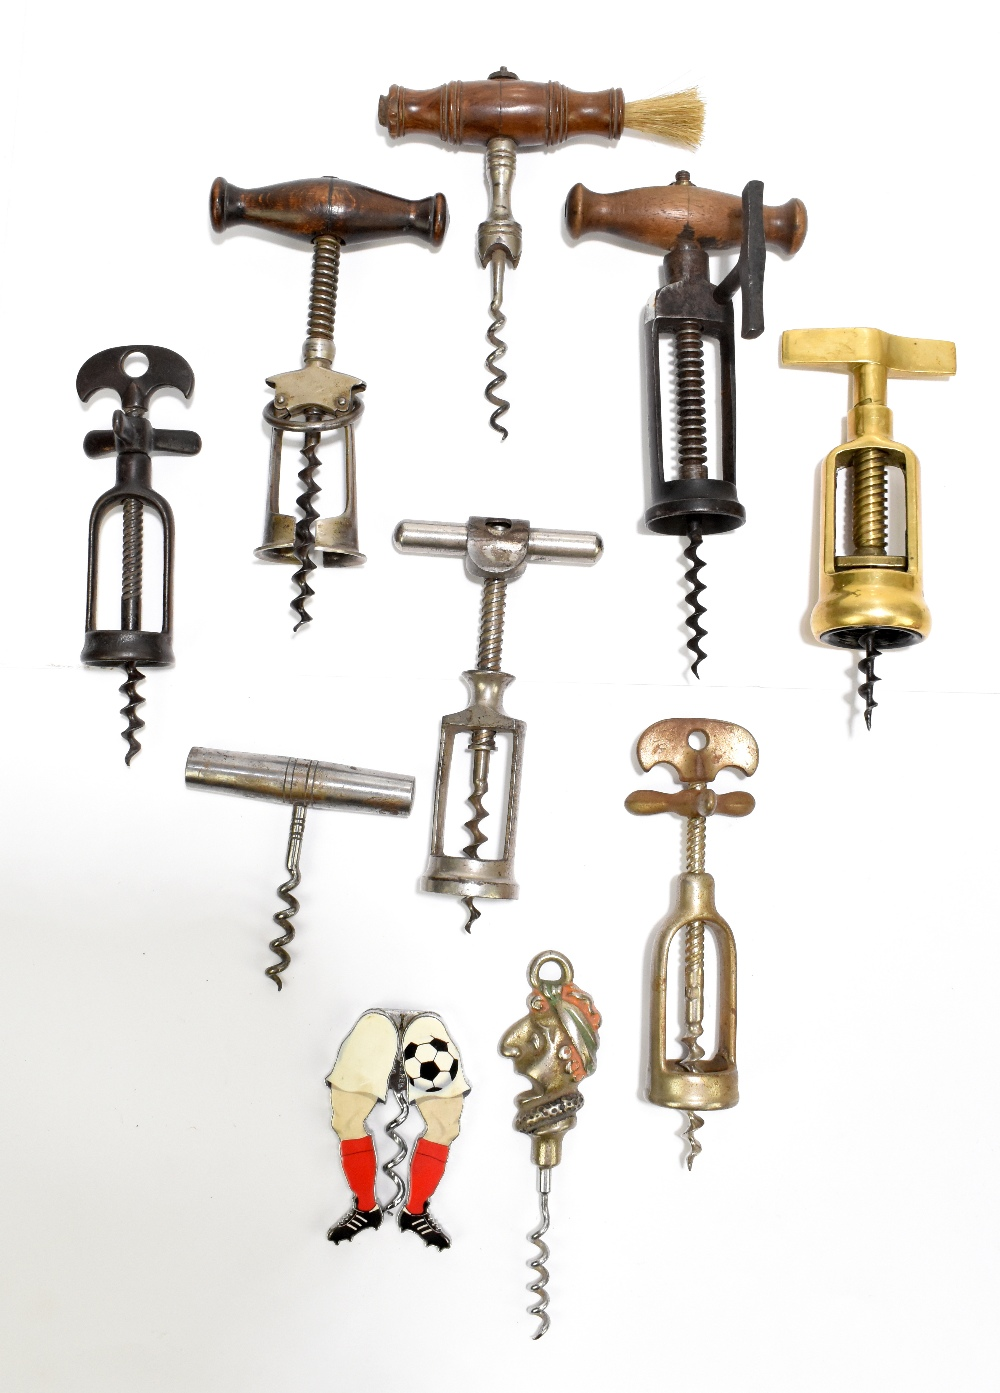 Ten corkscrews including Mister Punch, brass and three wooden handled examples (10).Additional